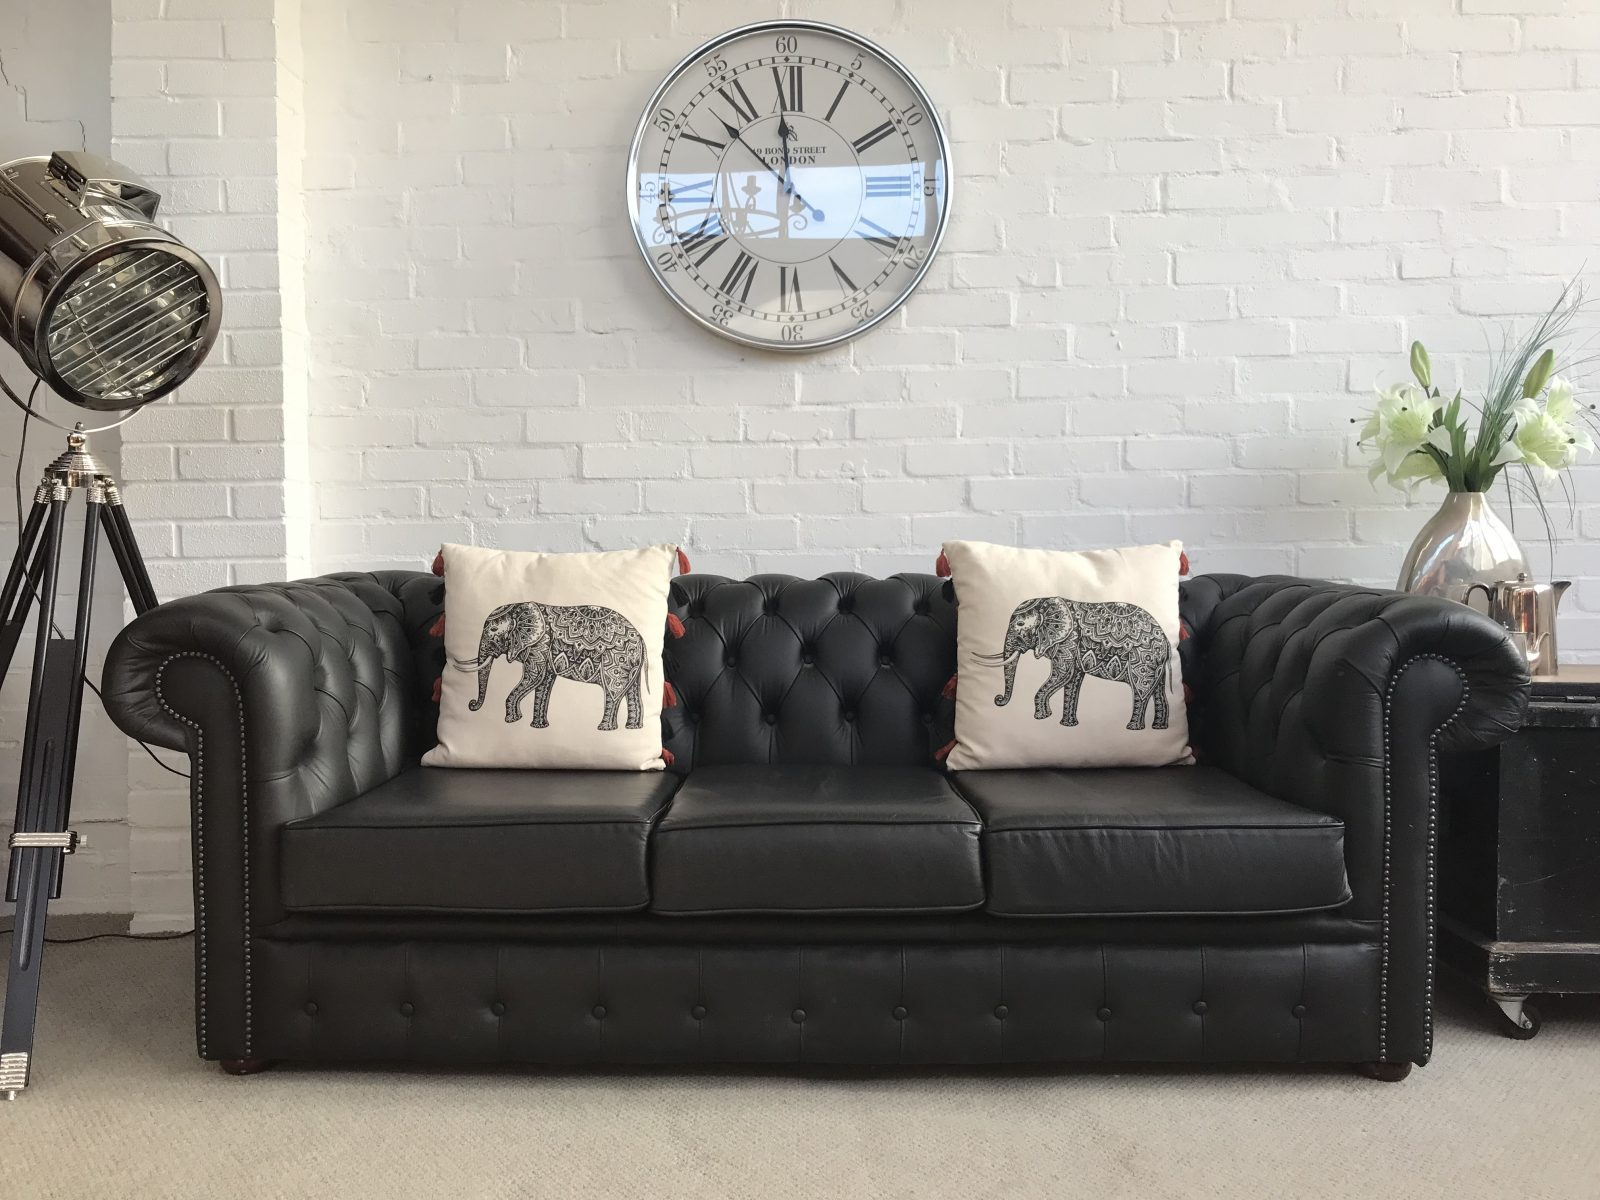 Stunning Black 3 Seater Chesterfield Sofa Bed.